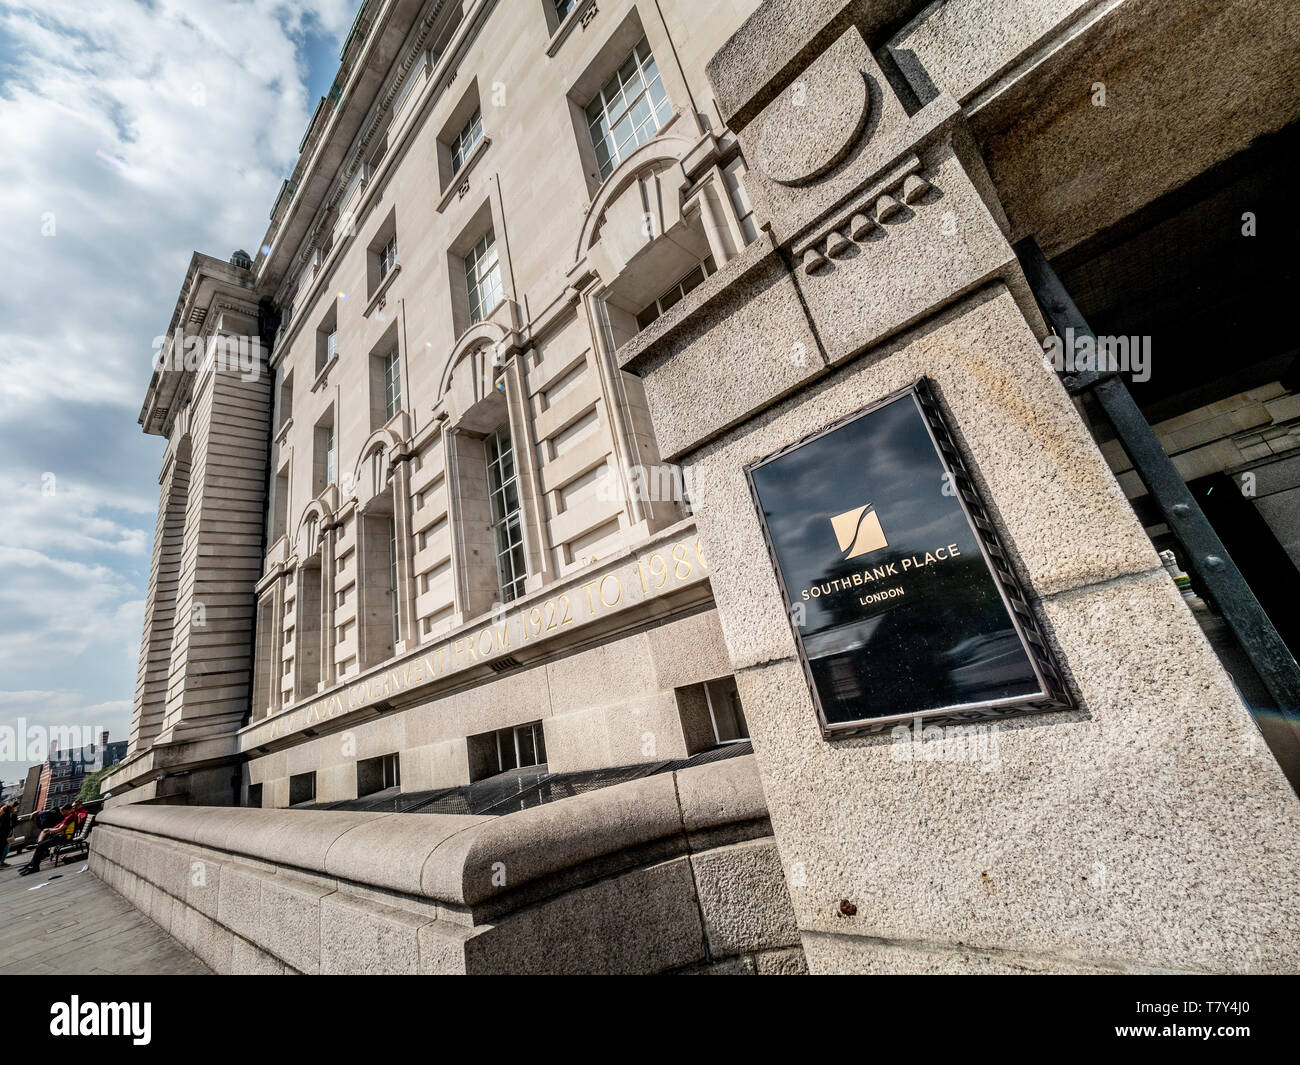 County Hall building, Westminster, London. Home of London Government 1922-1986. Now used as an events venue and hotel. - Stock Image